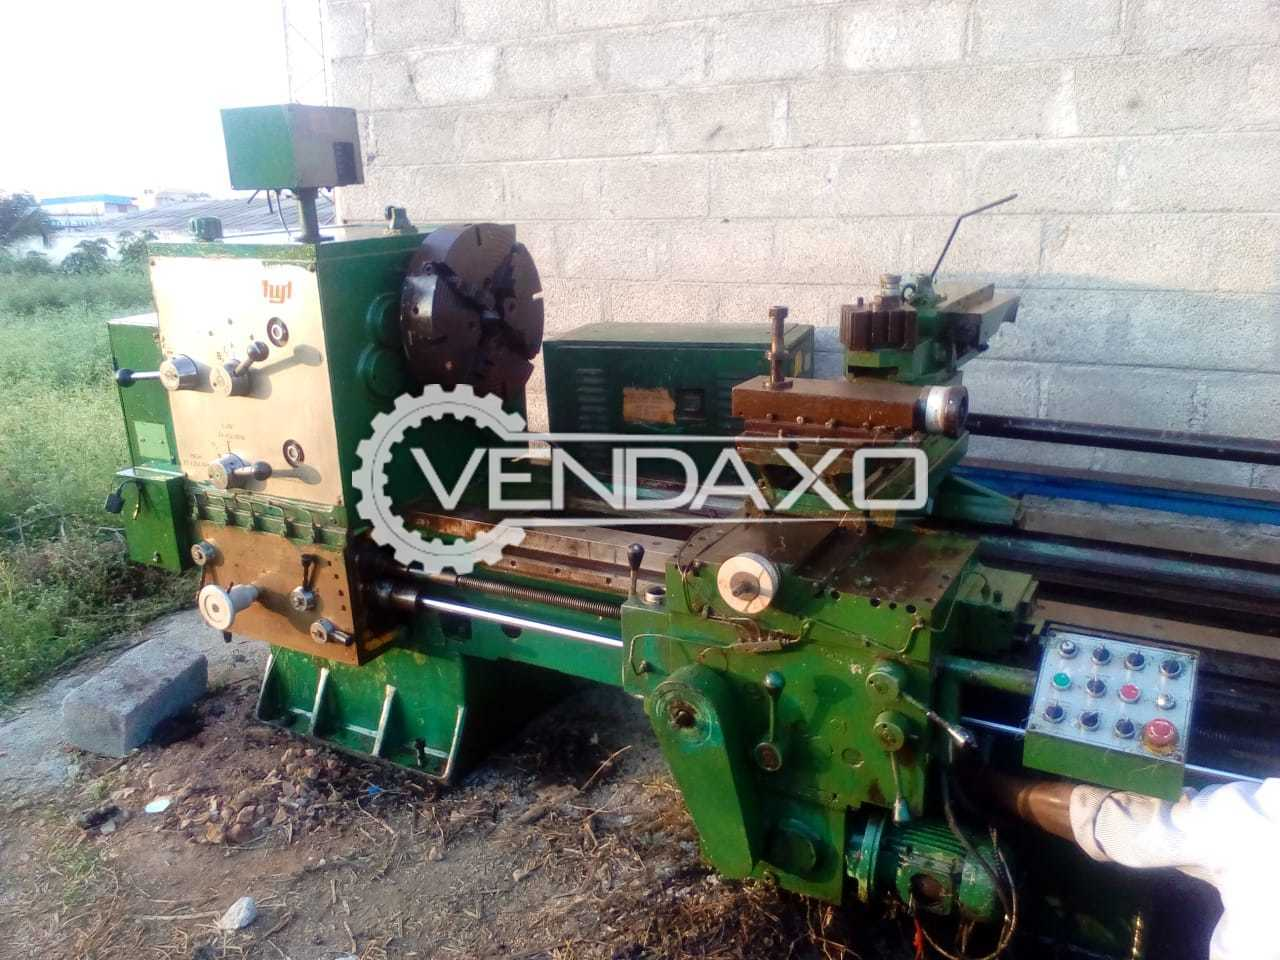 For Sale Used Lathe Machine - 3000 mm x 20 Inch